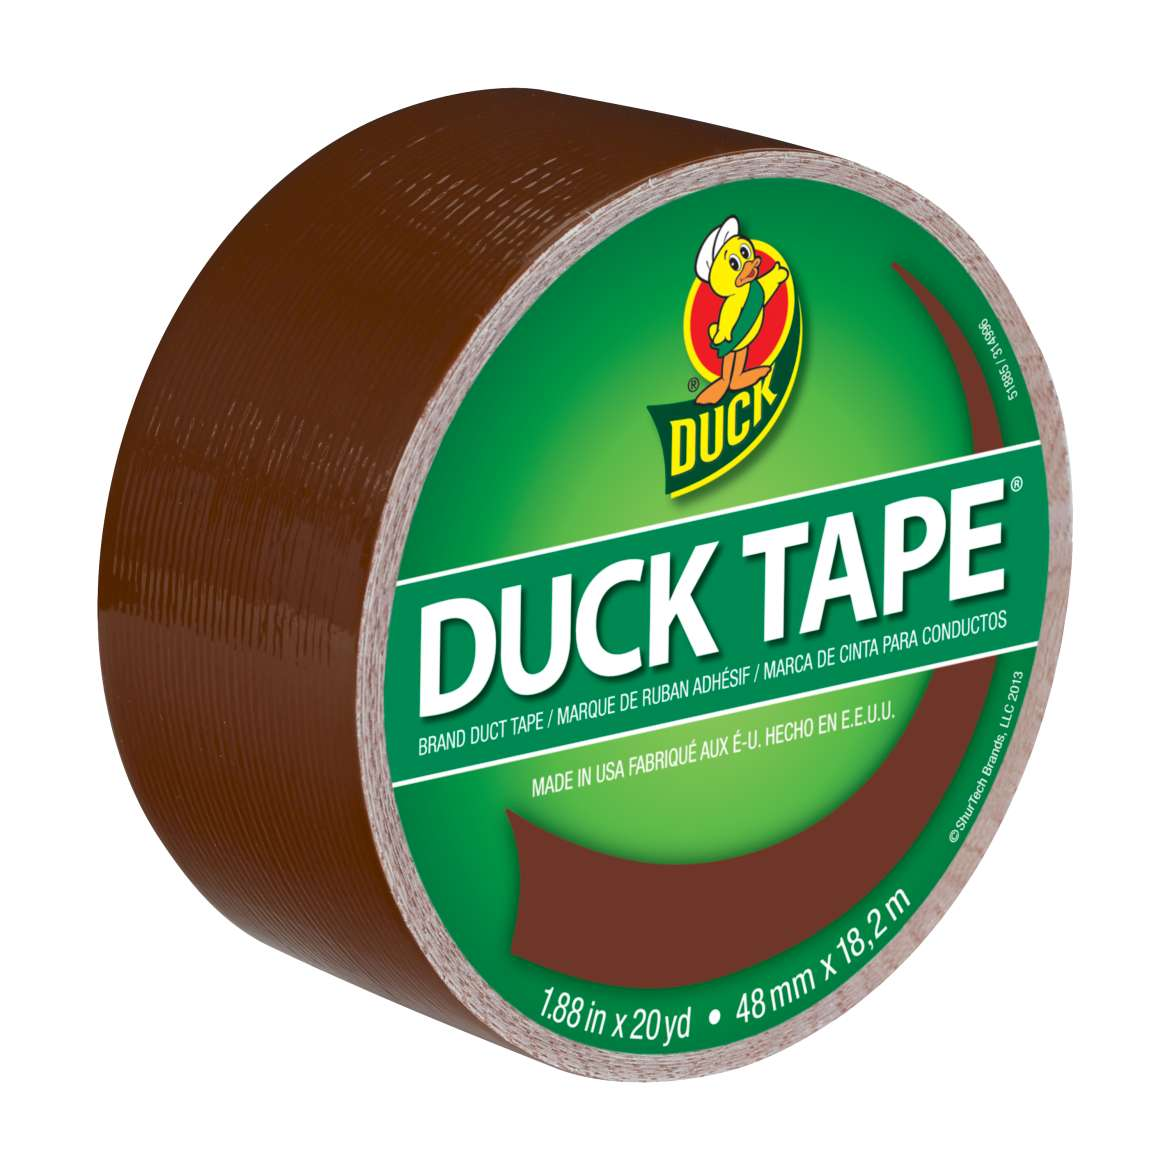 Color Duck Tape Brand Duct Tape - Brown, 1.88 in. x 20 yd.